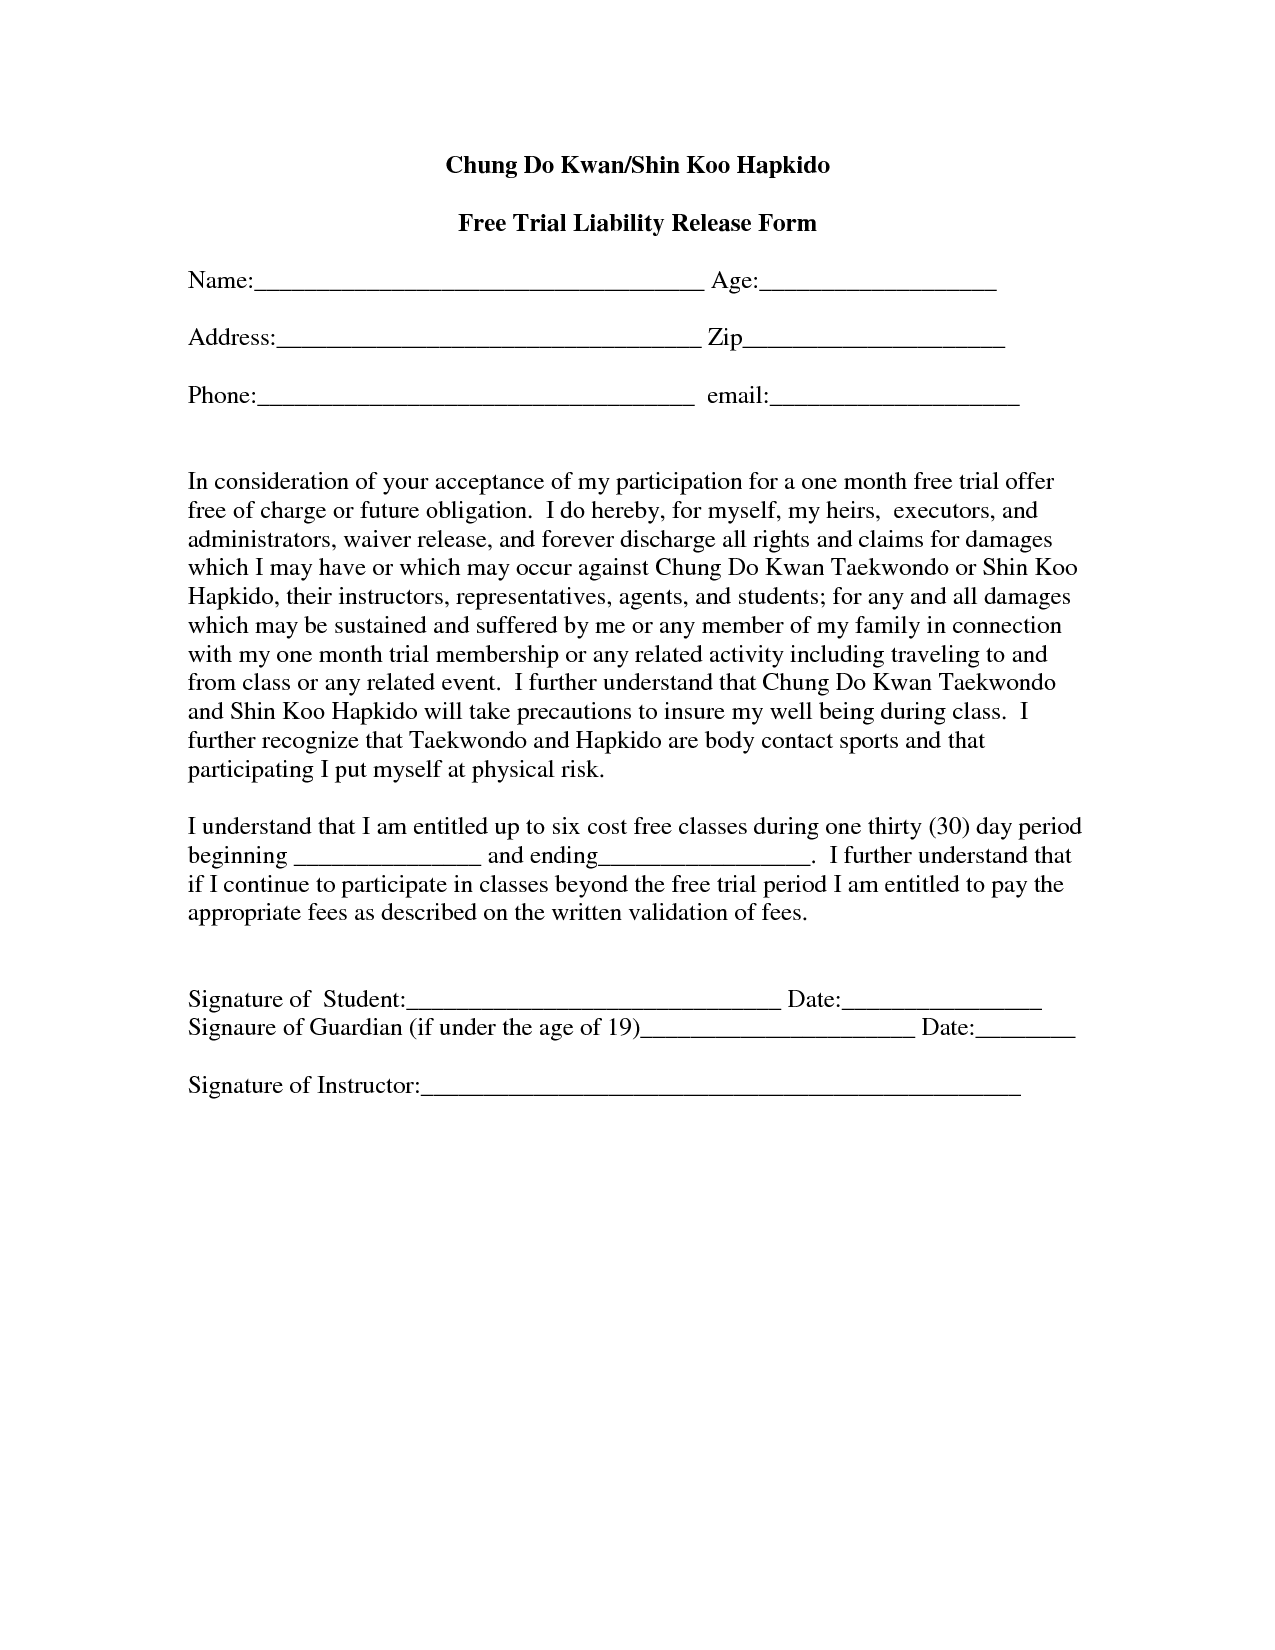 liability waiver form template | datariouruguay